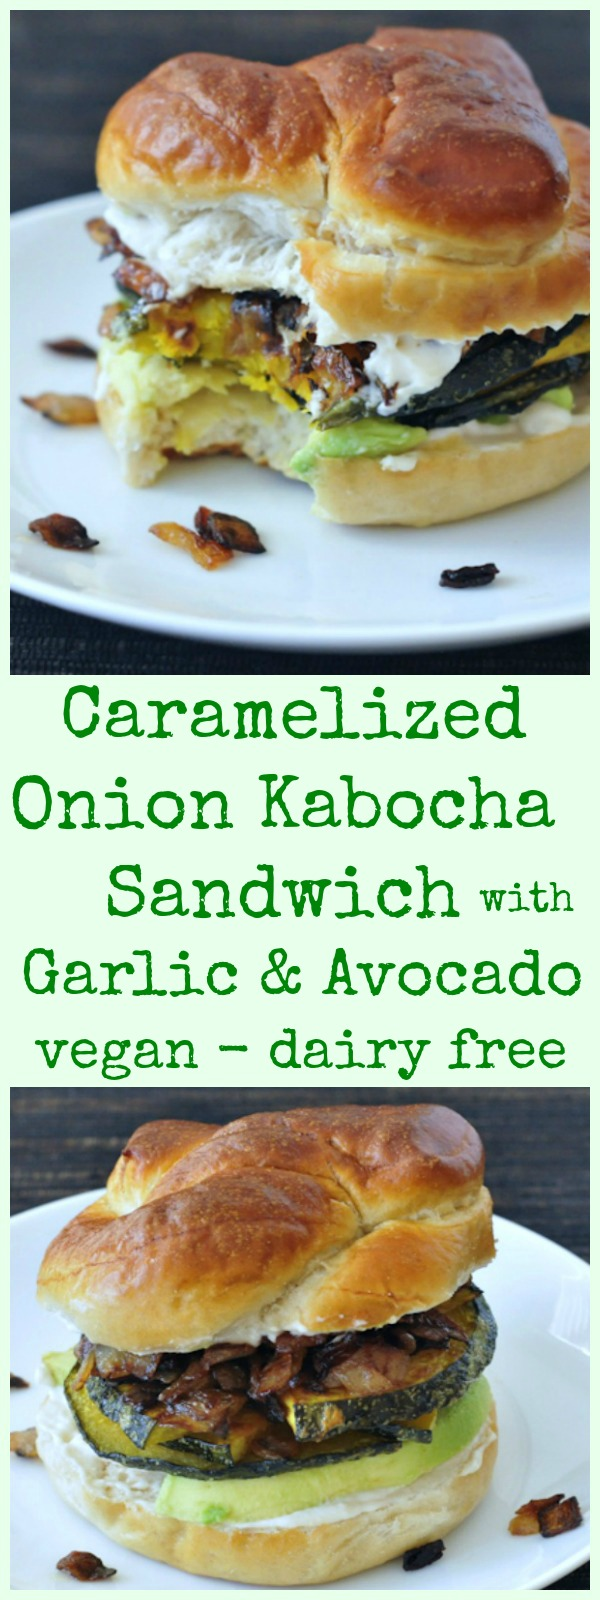 Caramelized Onion Kabocha Sandwich with Garlic and Avocado @spabettie #vegan